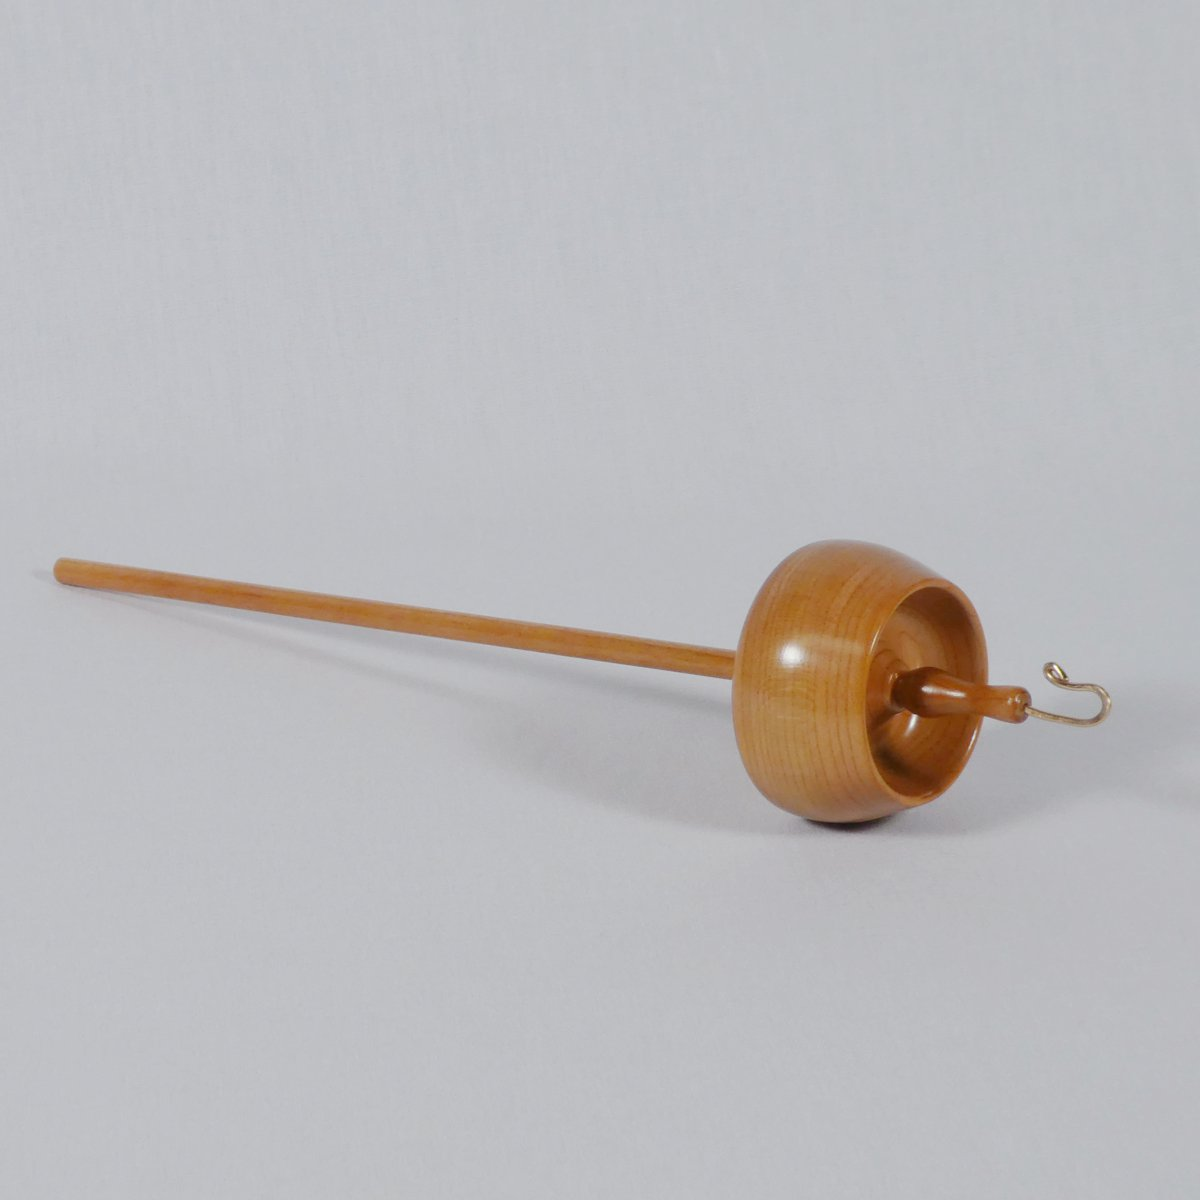 Featuring a deeply hollowed bowl shaped whorl this top whorl drop spindle is rim weighted due to its shaping. Created by Cynthia D. Haney from Cherry wood.